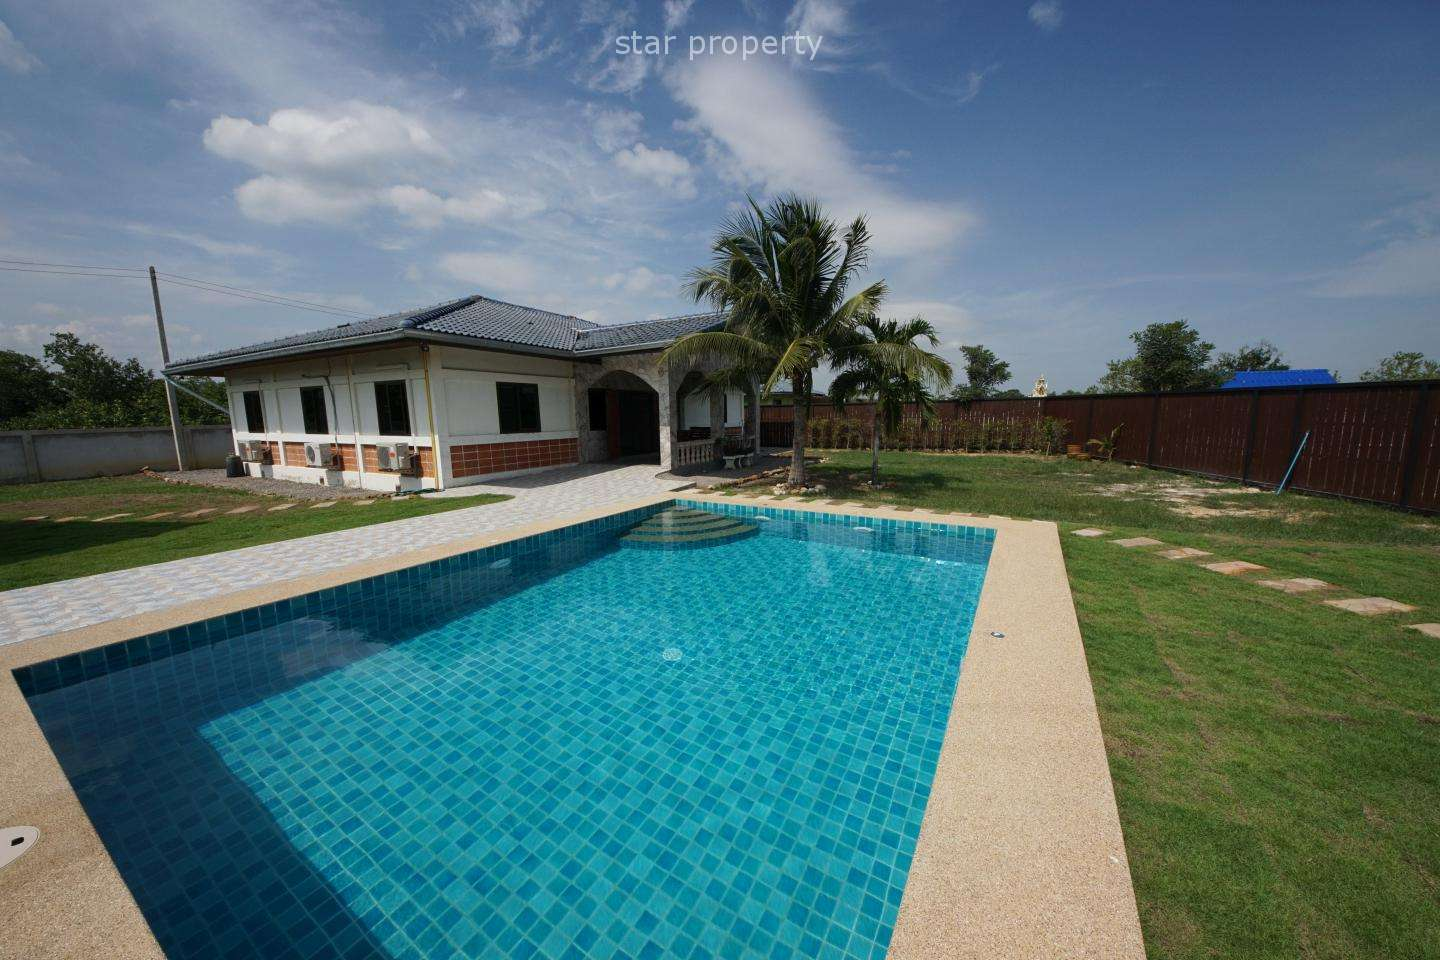 3 Bedroom Bungalow with Pool for Sale in Pranburi at Pran Buri District, Prachuap Khiri Khan, Thailand